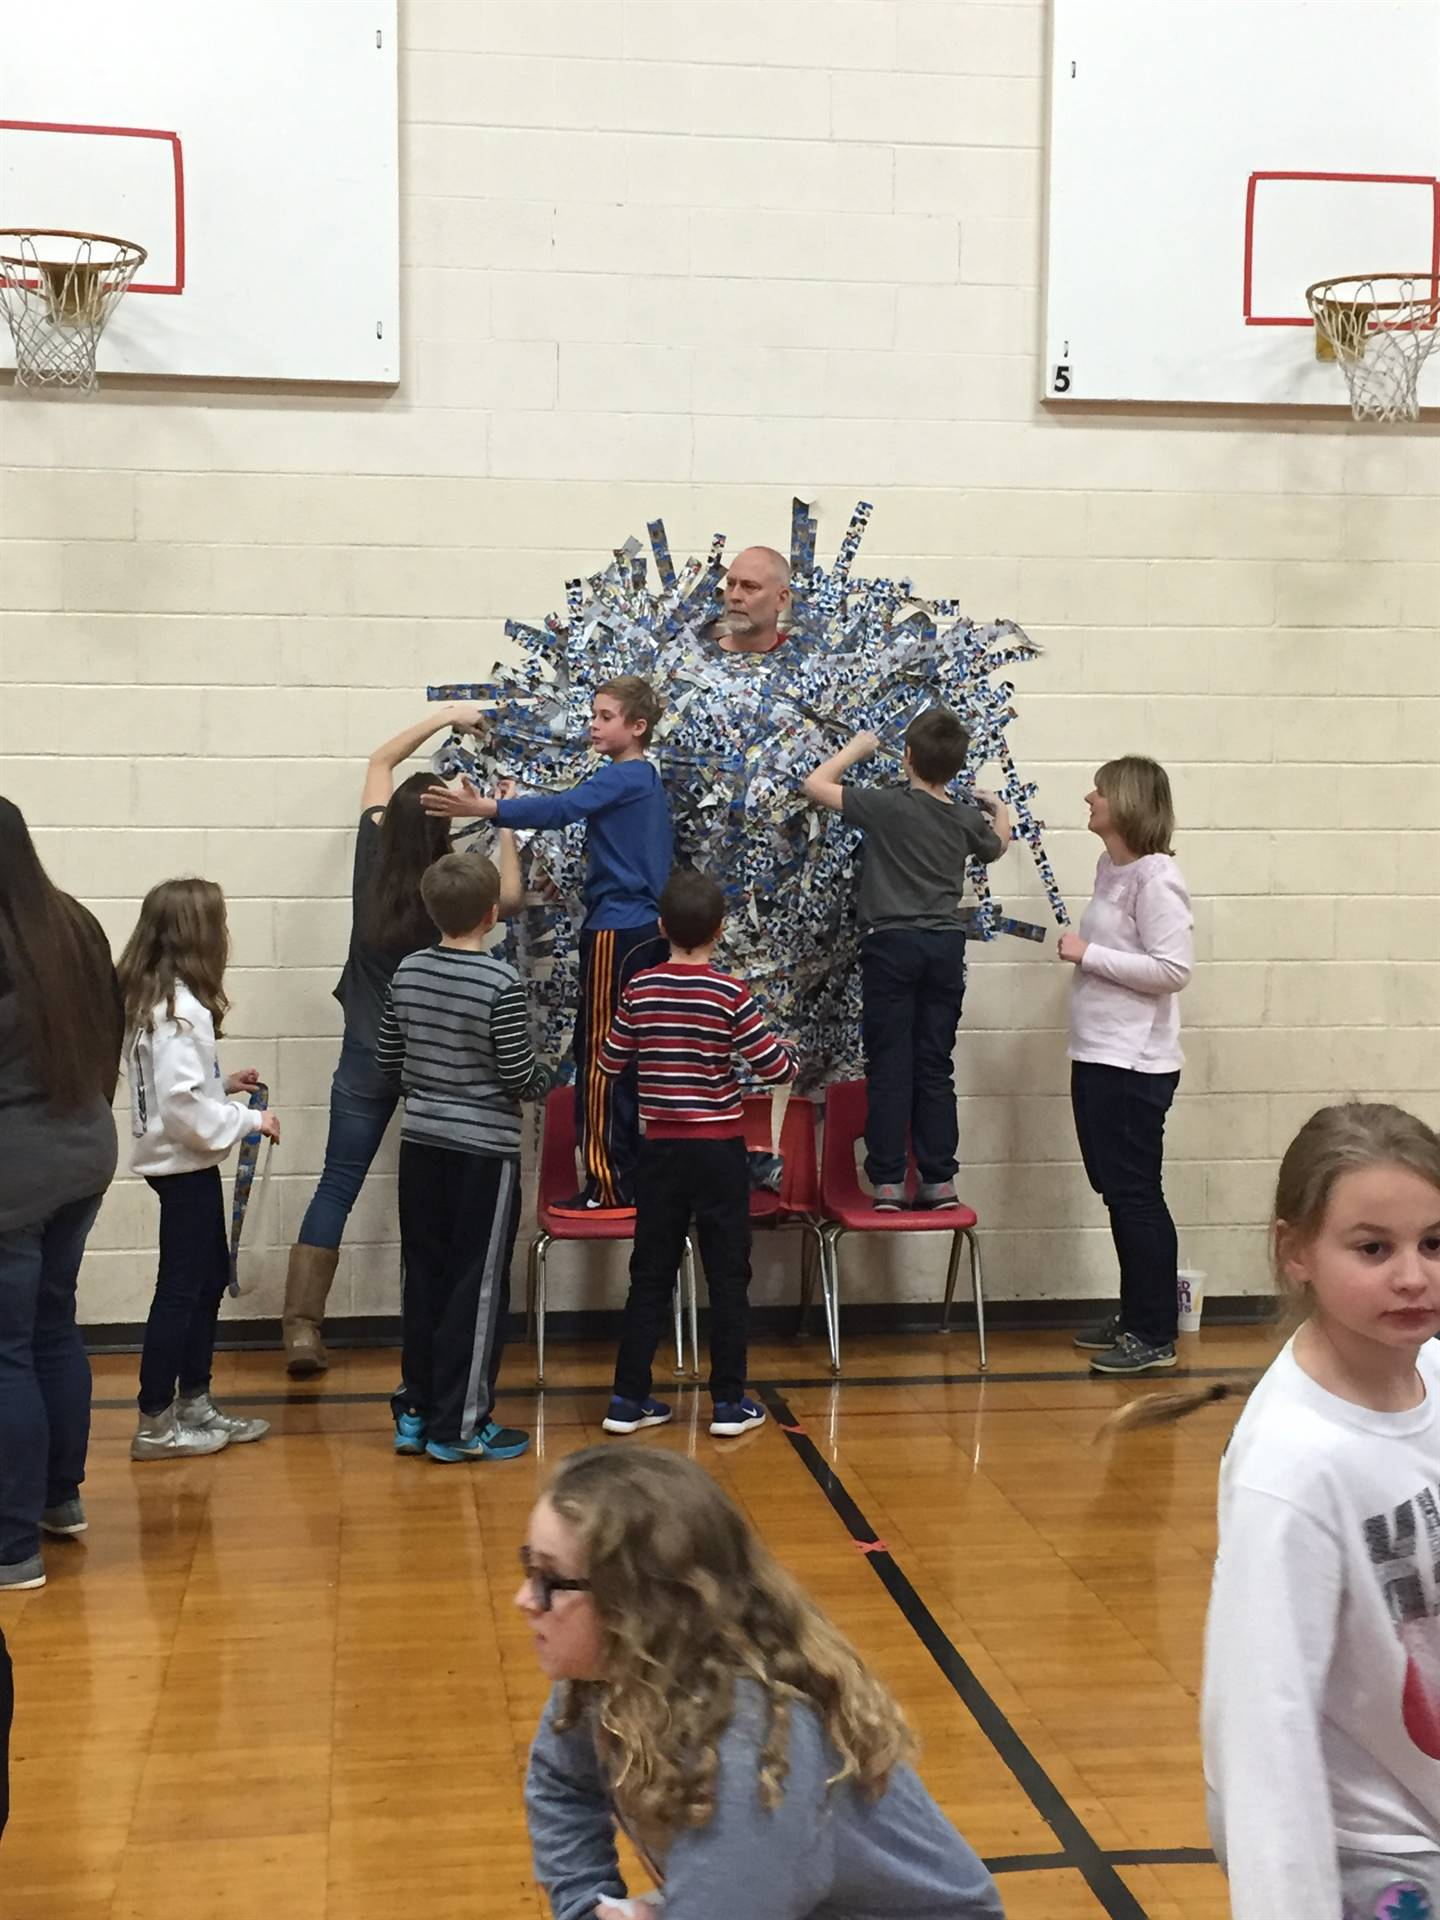 Mr. Hartland being taped to the wall